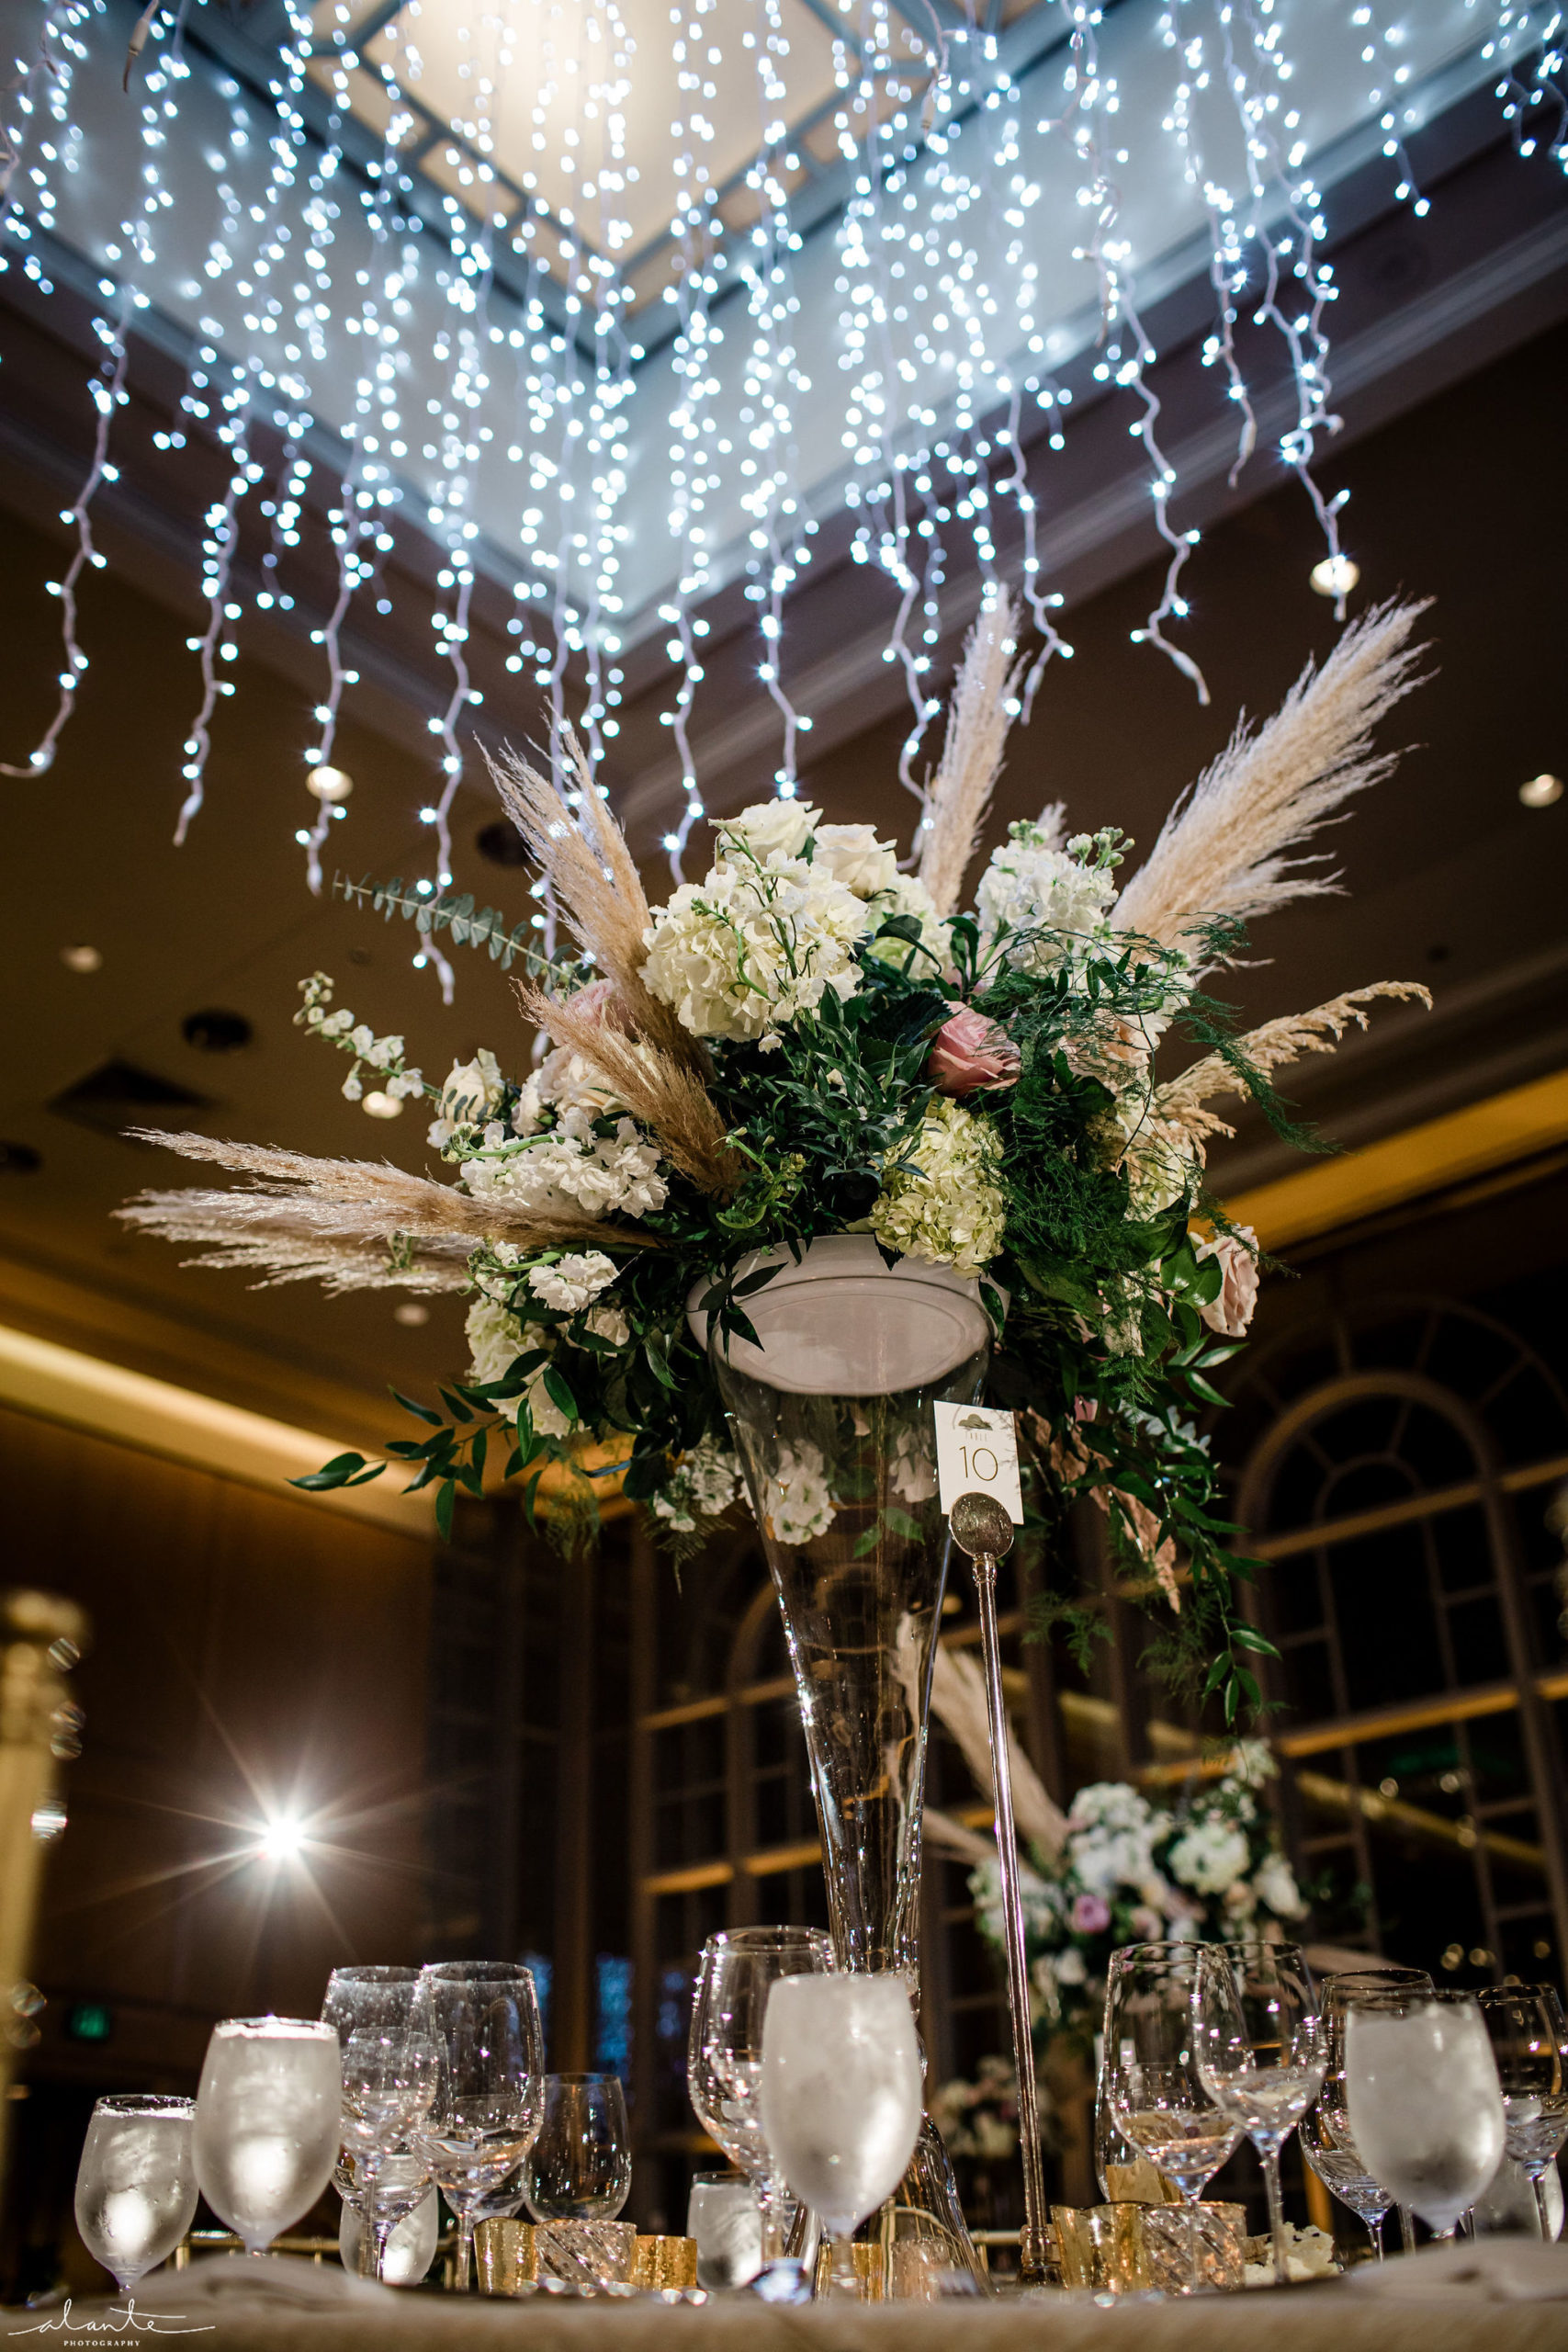 Tall floral centerpiece with hydrangea, roses and pampas grass under a holiday light chandelier hanging from the ceiling.